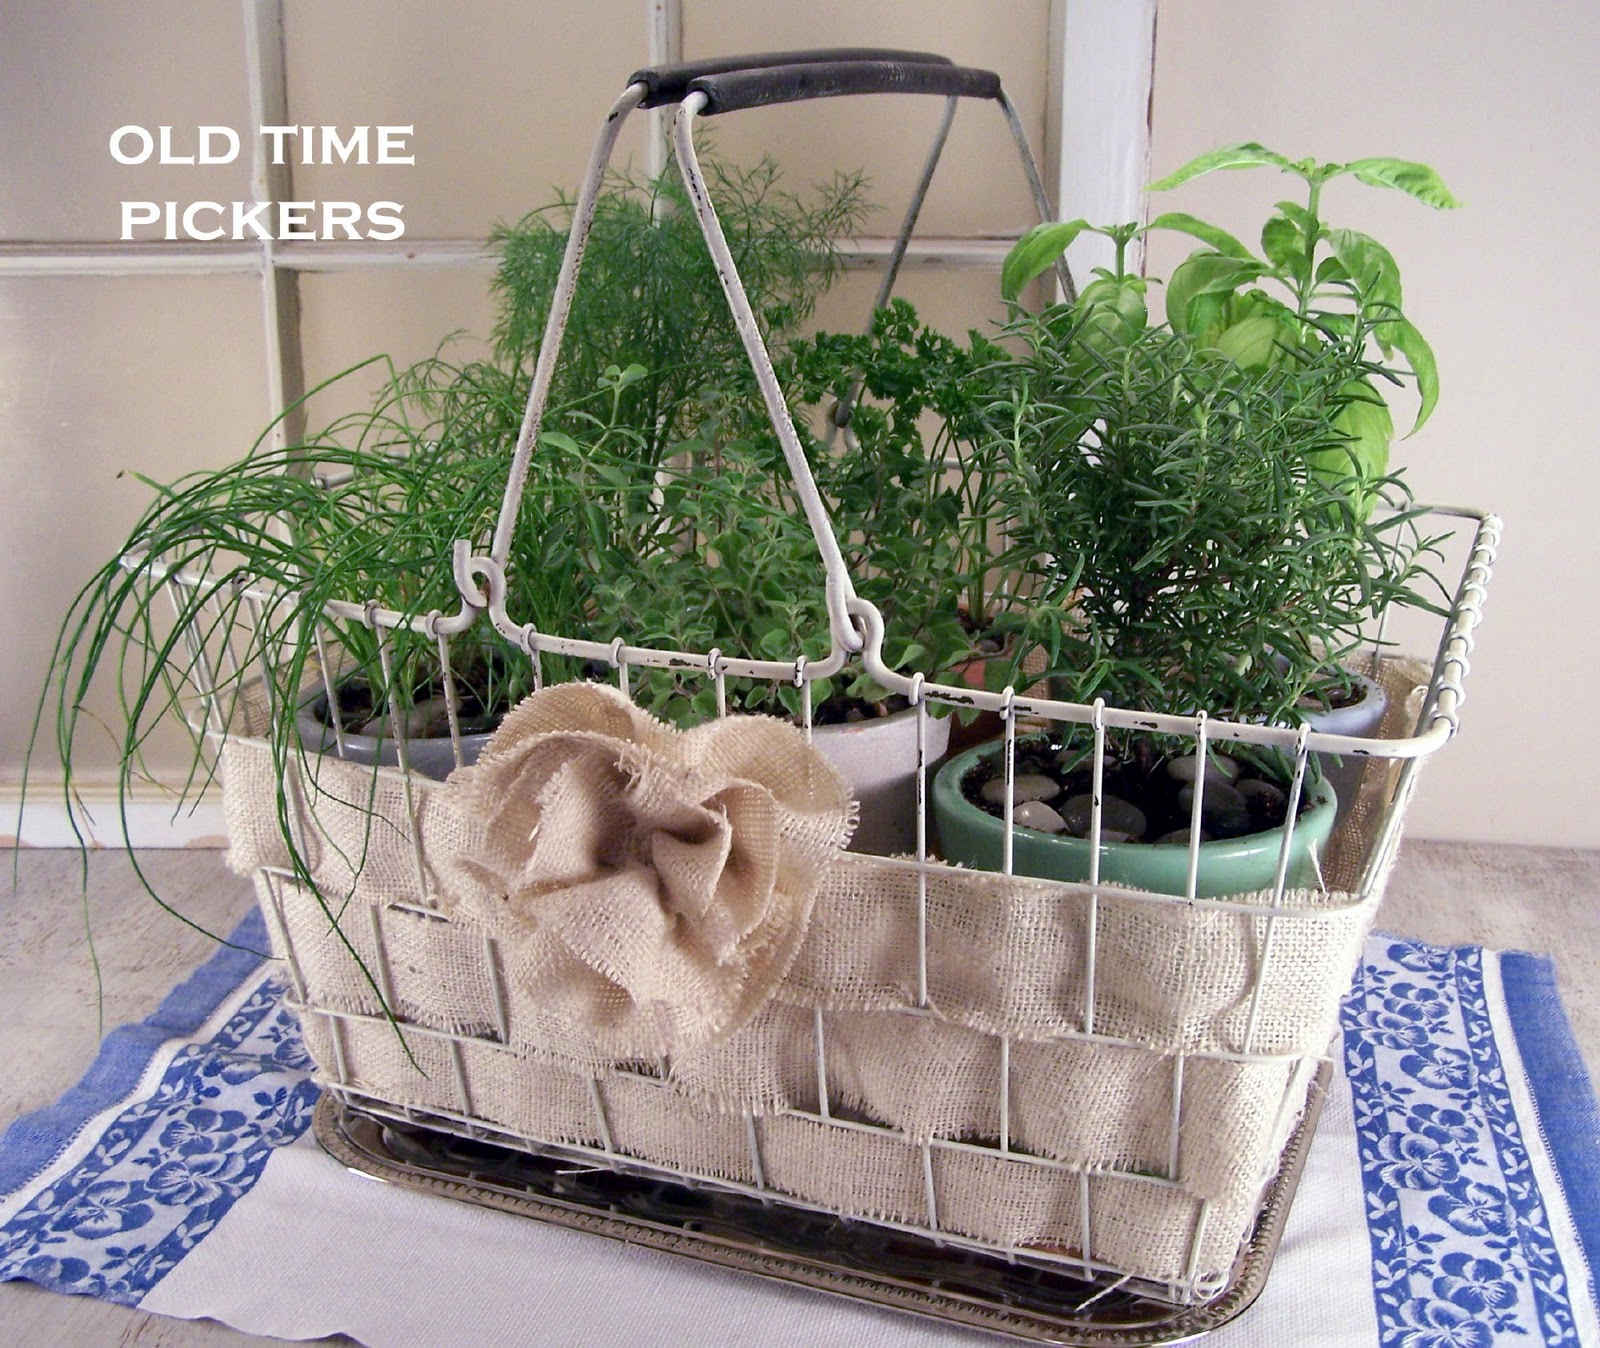 Old Wire Baskets Make Great Industrial Chic Home Decor   Rustic     source